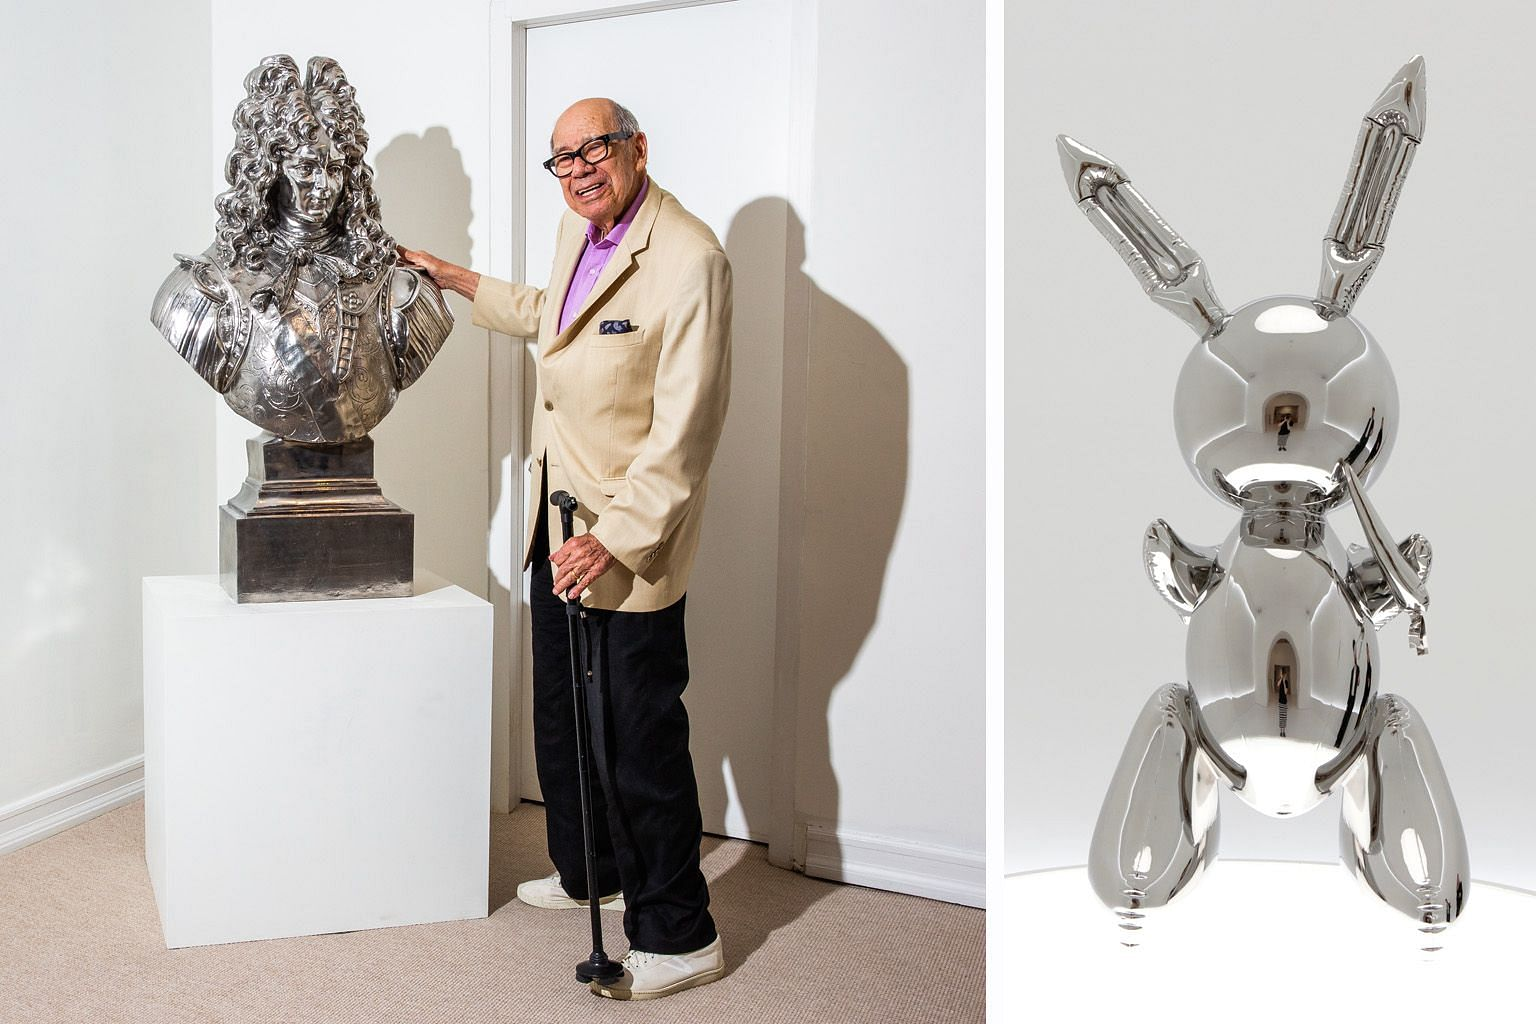 Gallerist and former Goldman Sachs partner Robert Mnuchin, at his gallery with Louis XIV by Jeff Koons, bought Koons's Rabbit (above) for US$91.1 million (S$126 million) last week on behalf of an anonymous client, setting a record price at auction fo